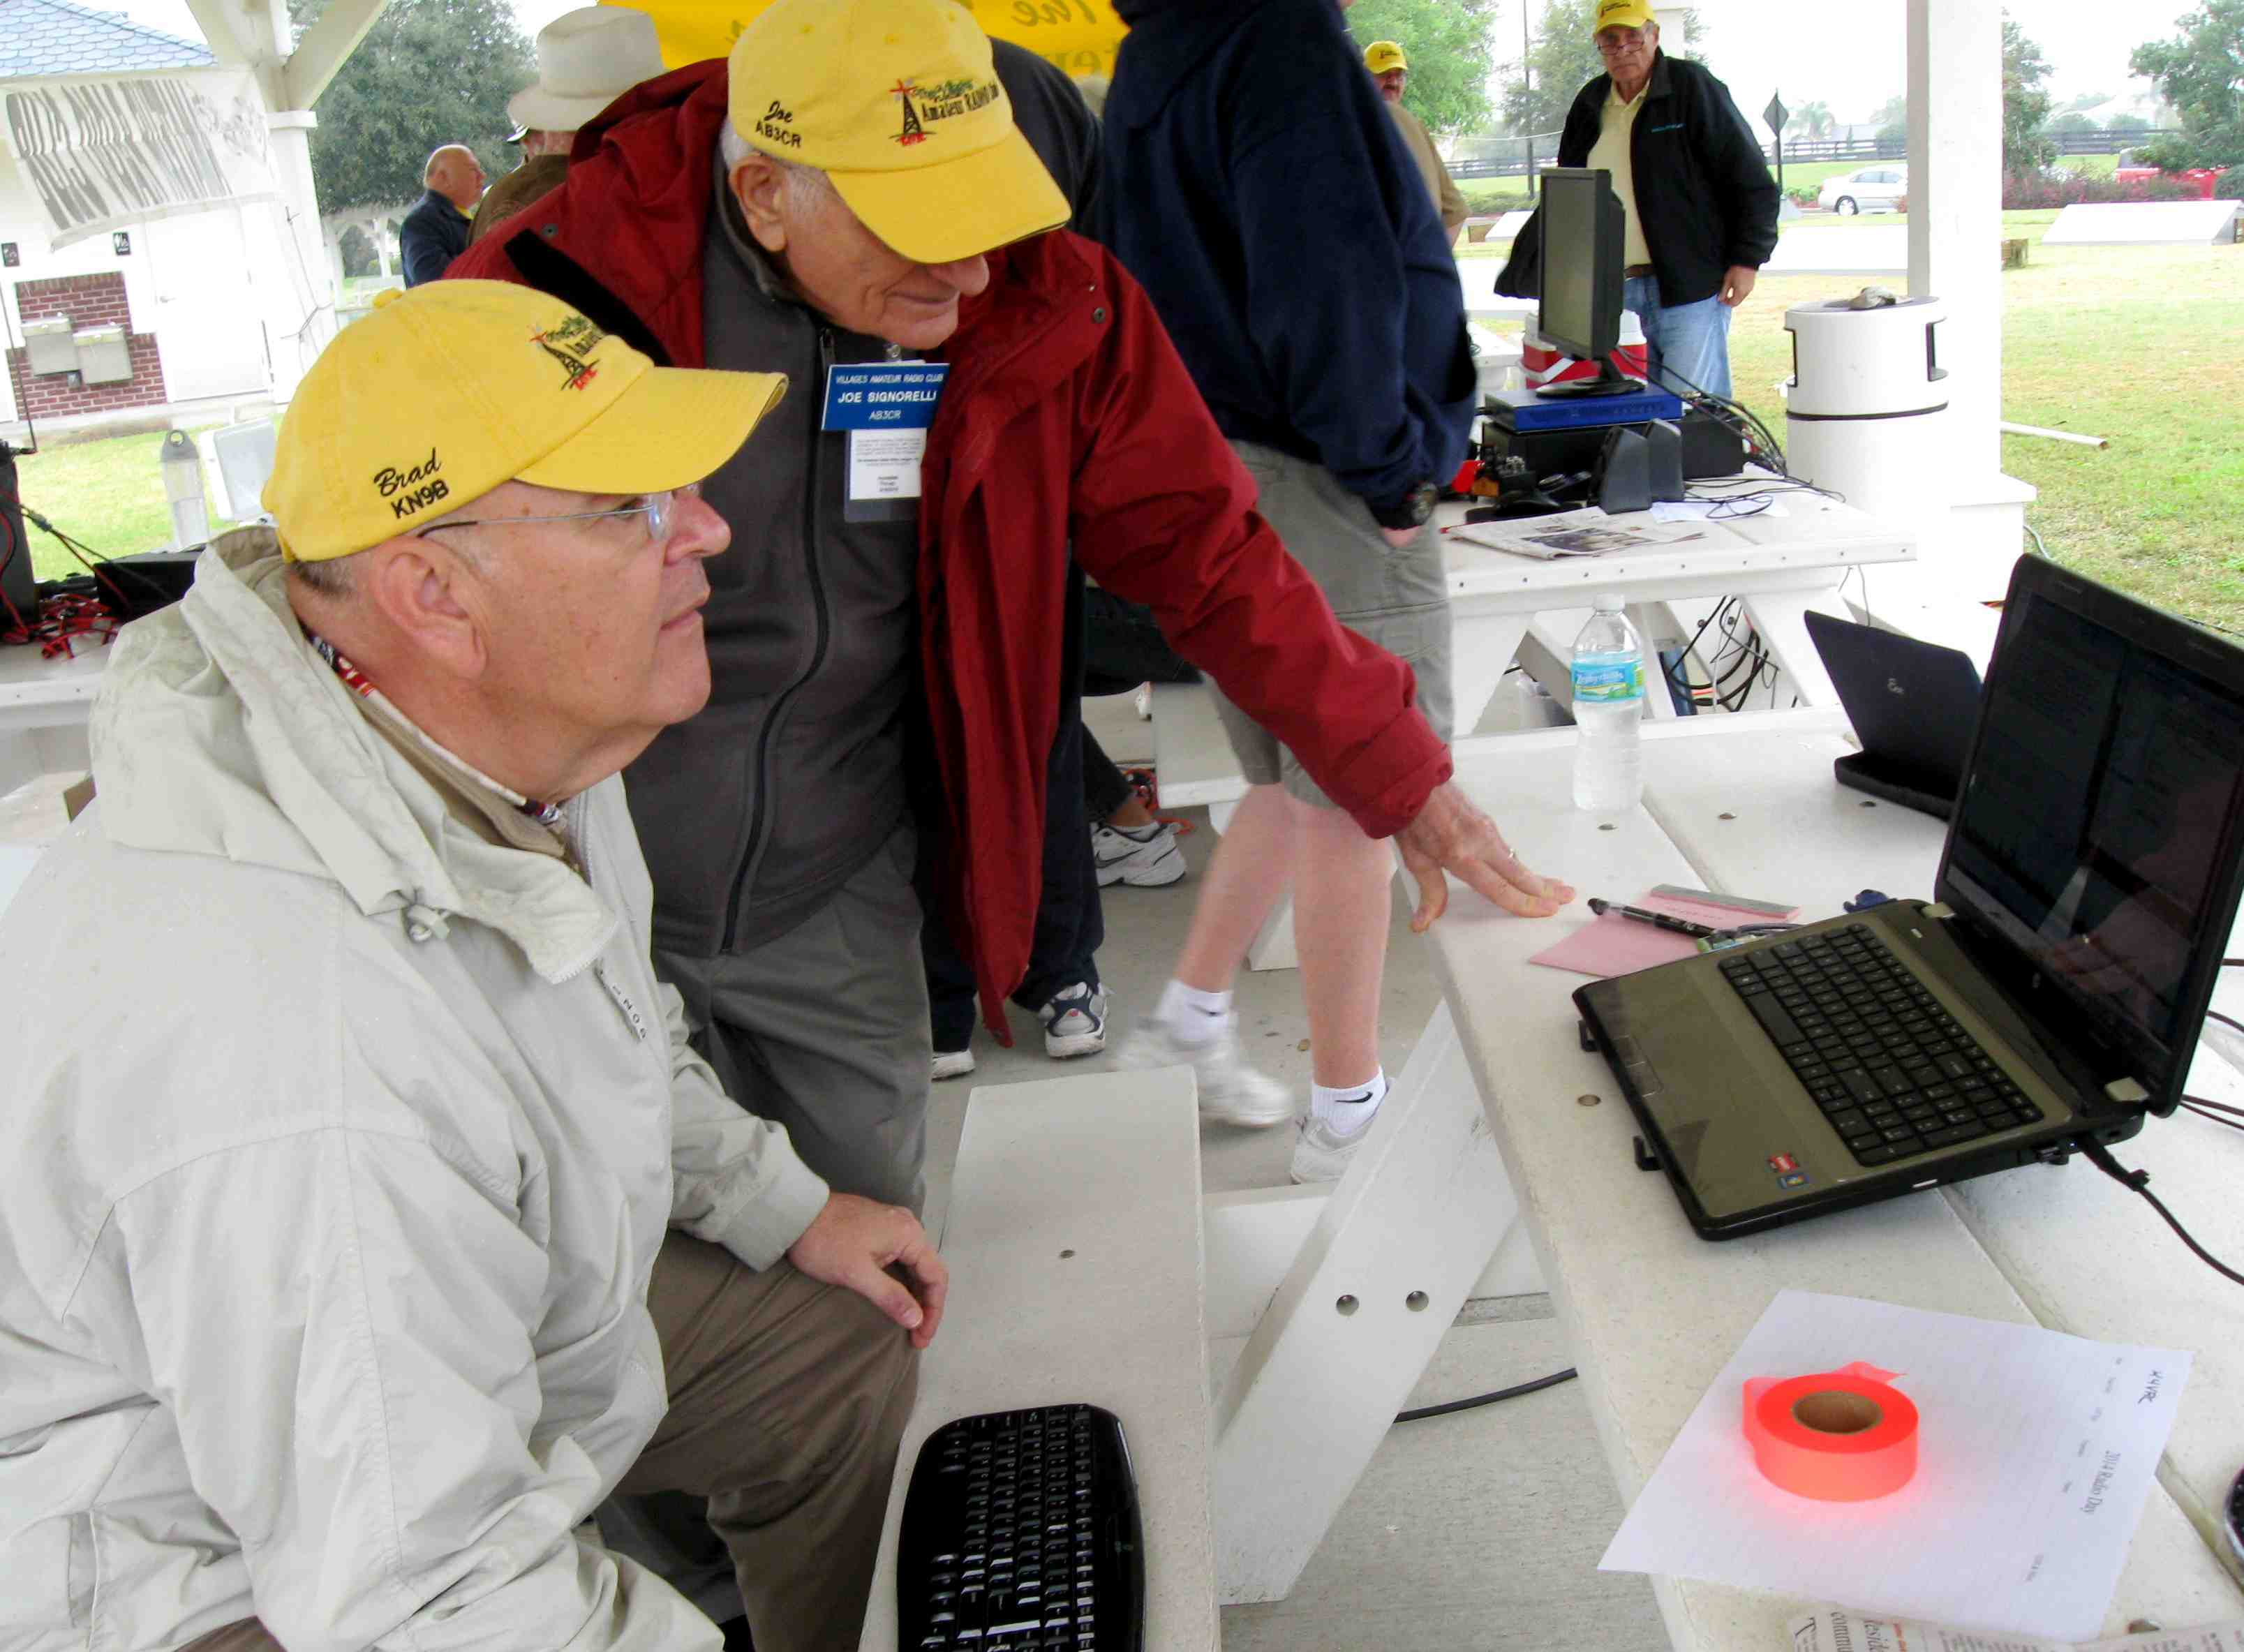 Villages Amateur Radio Club boasts 220 members who stand ready to provide help